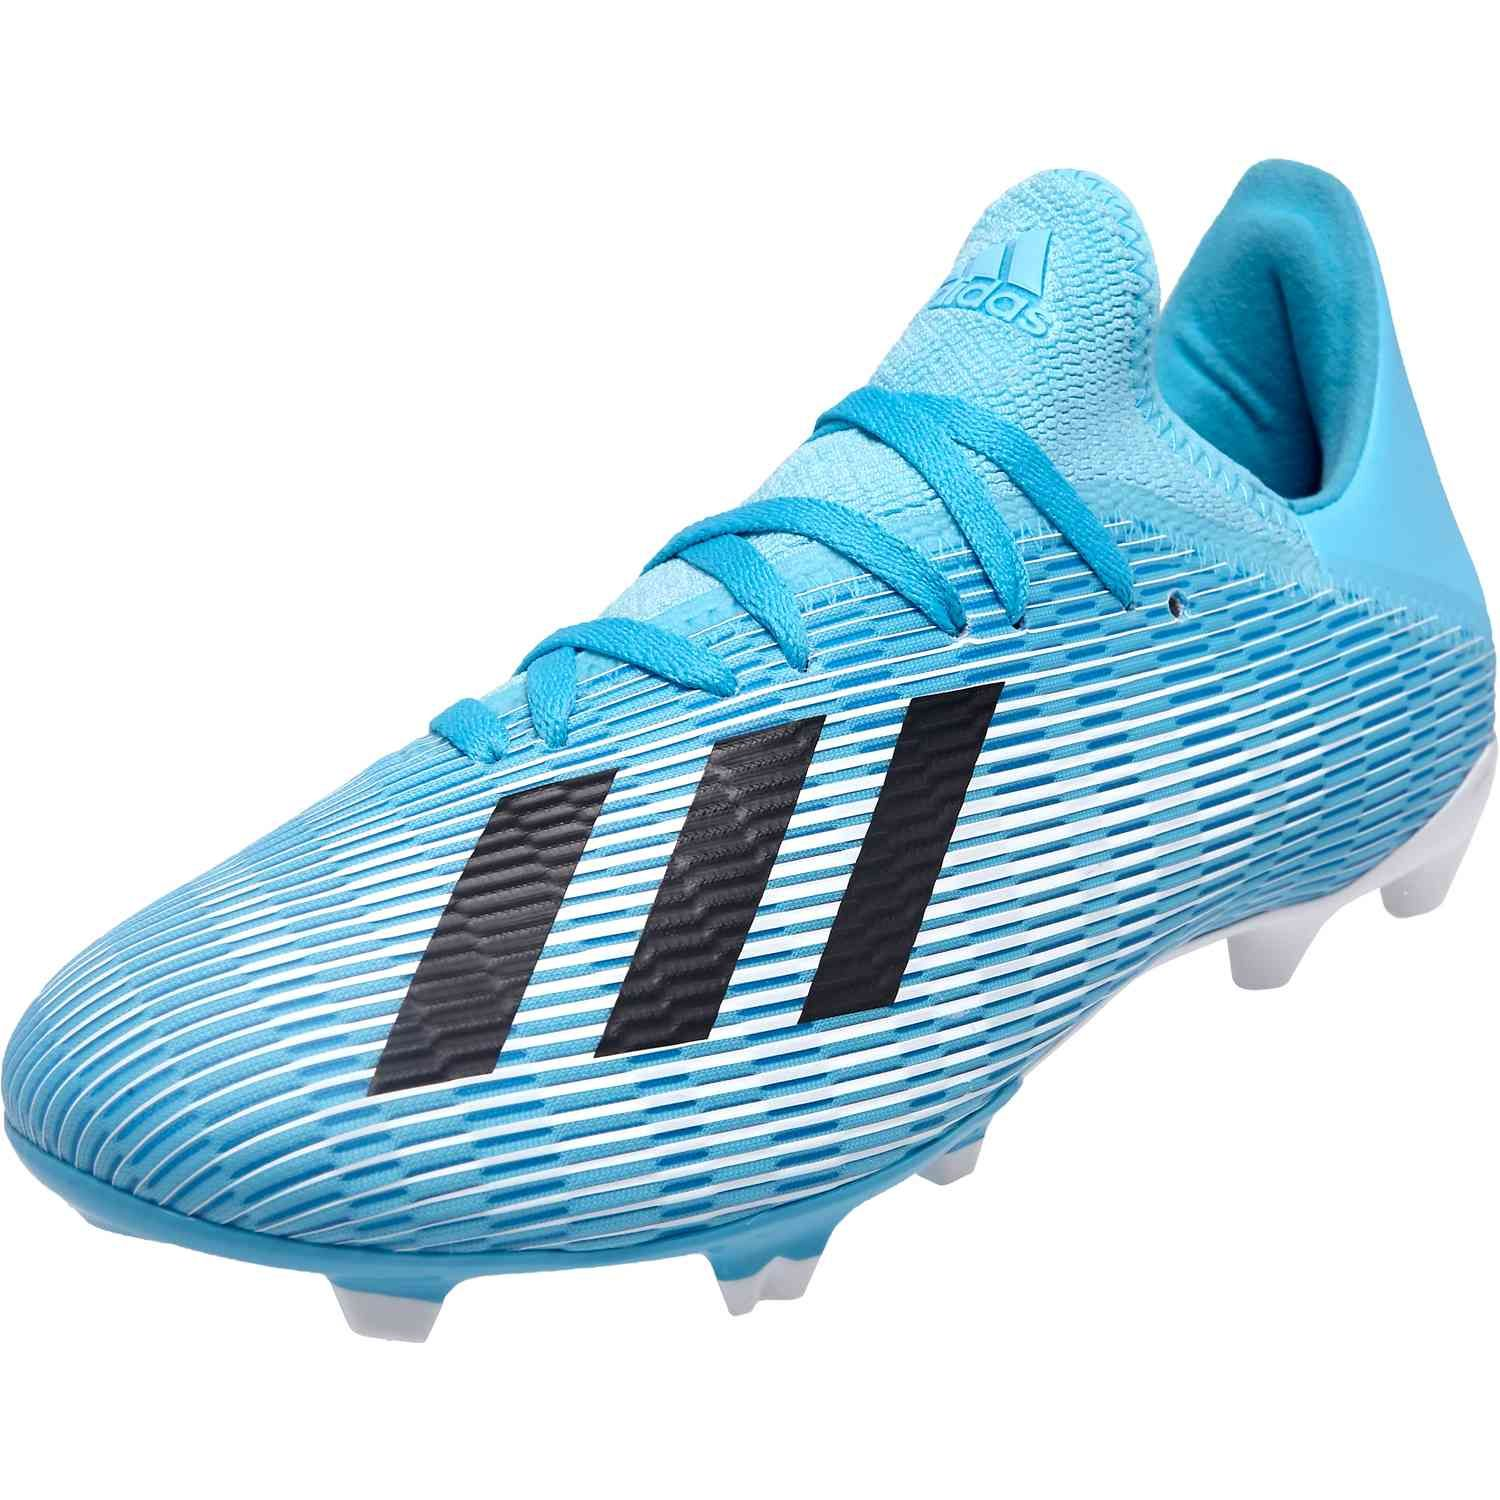 Adidas X 19 3 Fg Hard Wired Soccerpro Soccer Boots Soccer Shoes Adidas